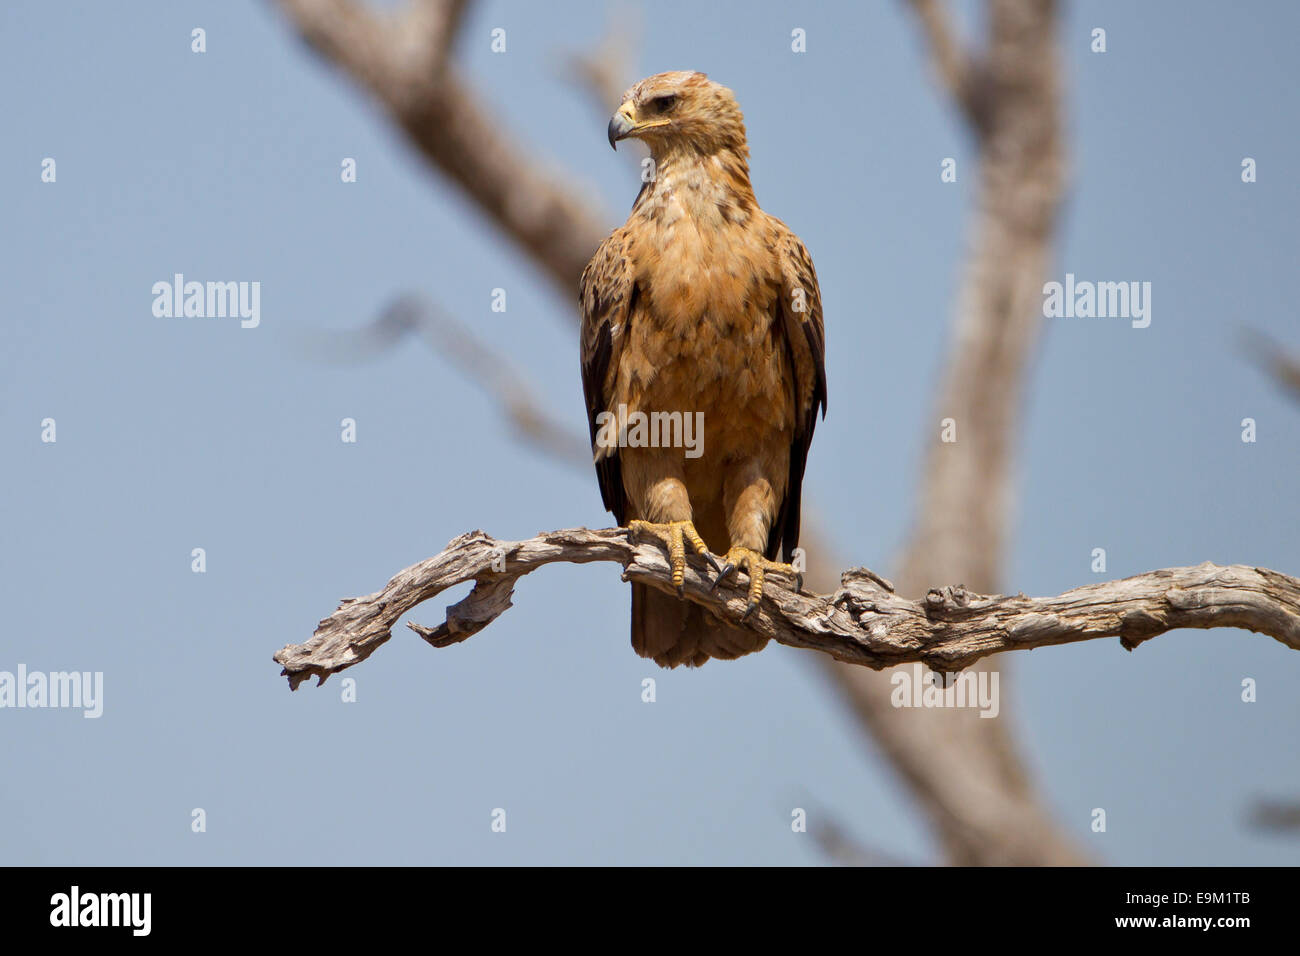 Snake eagle perched on a branch, botswana, Africa - Stock Image